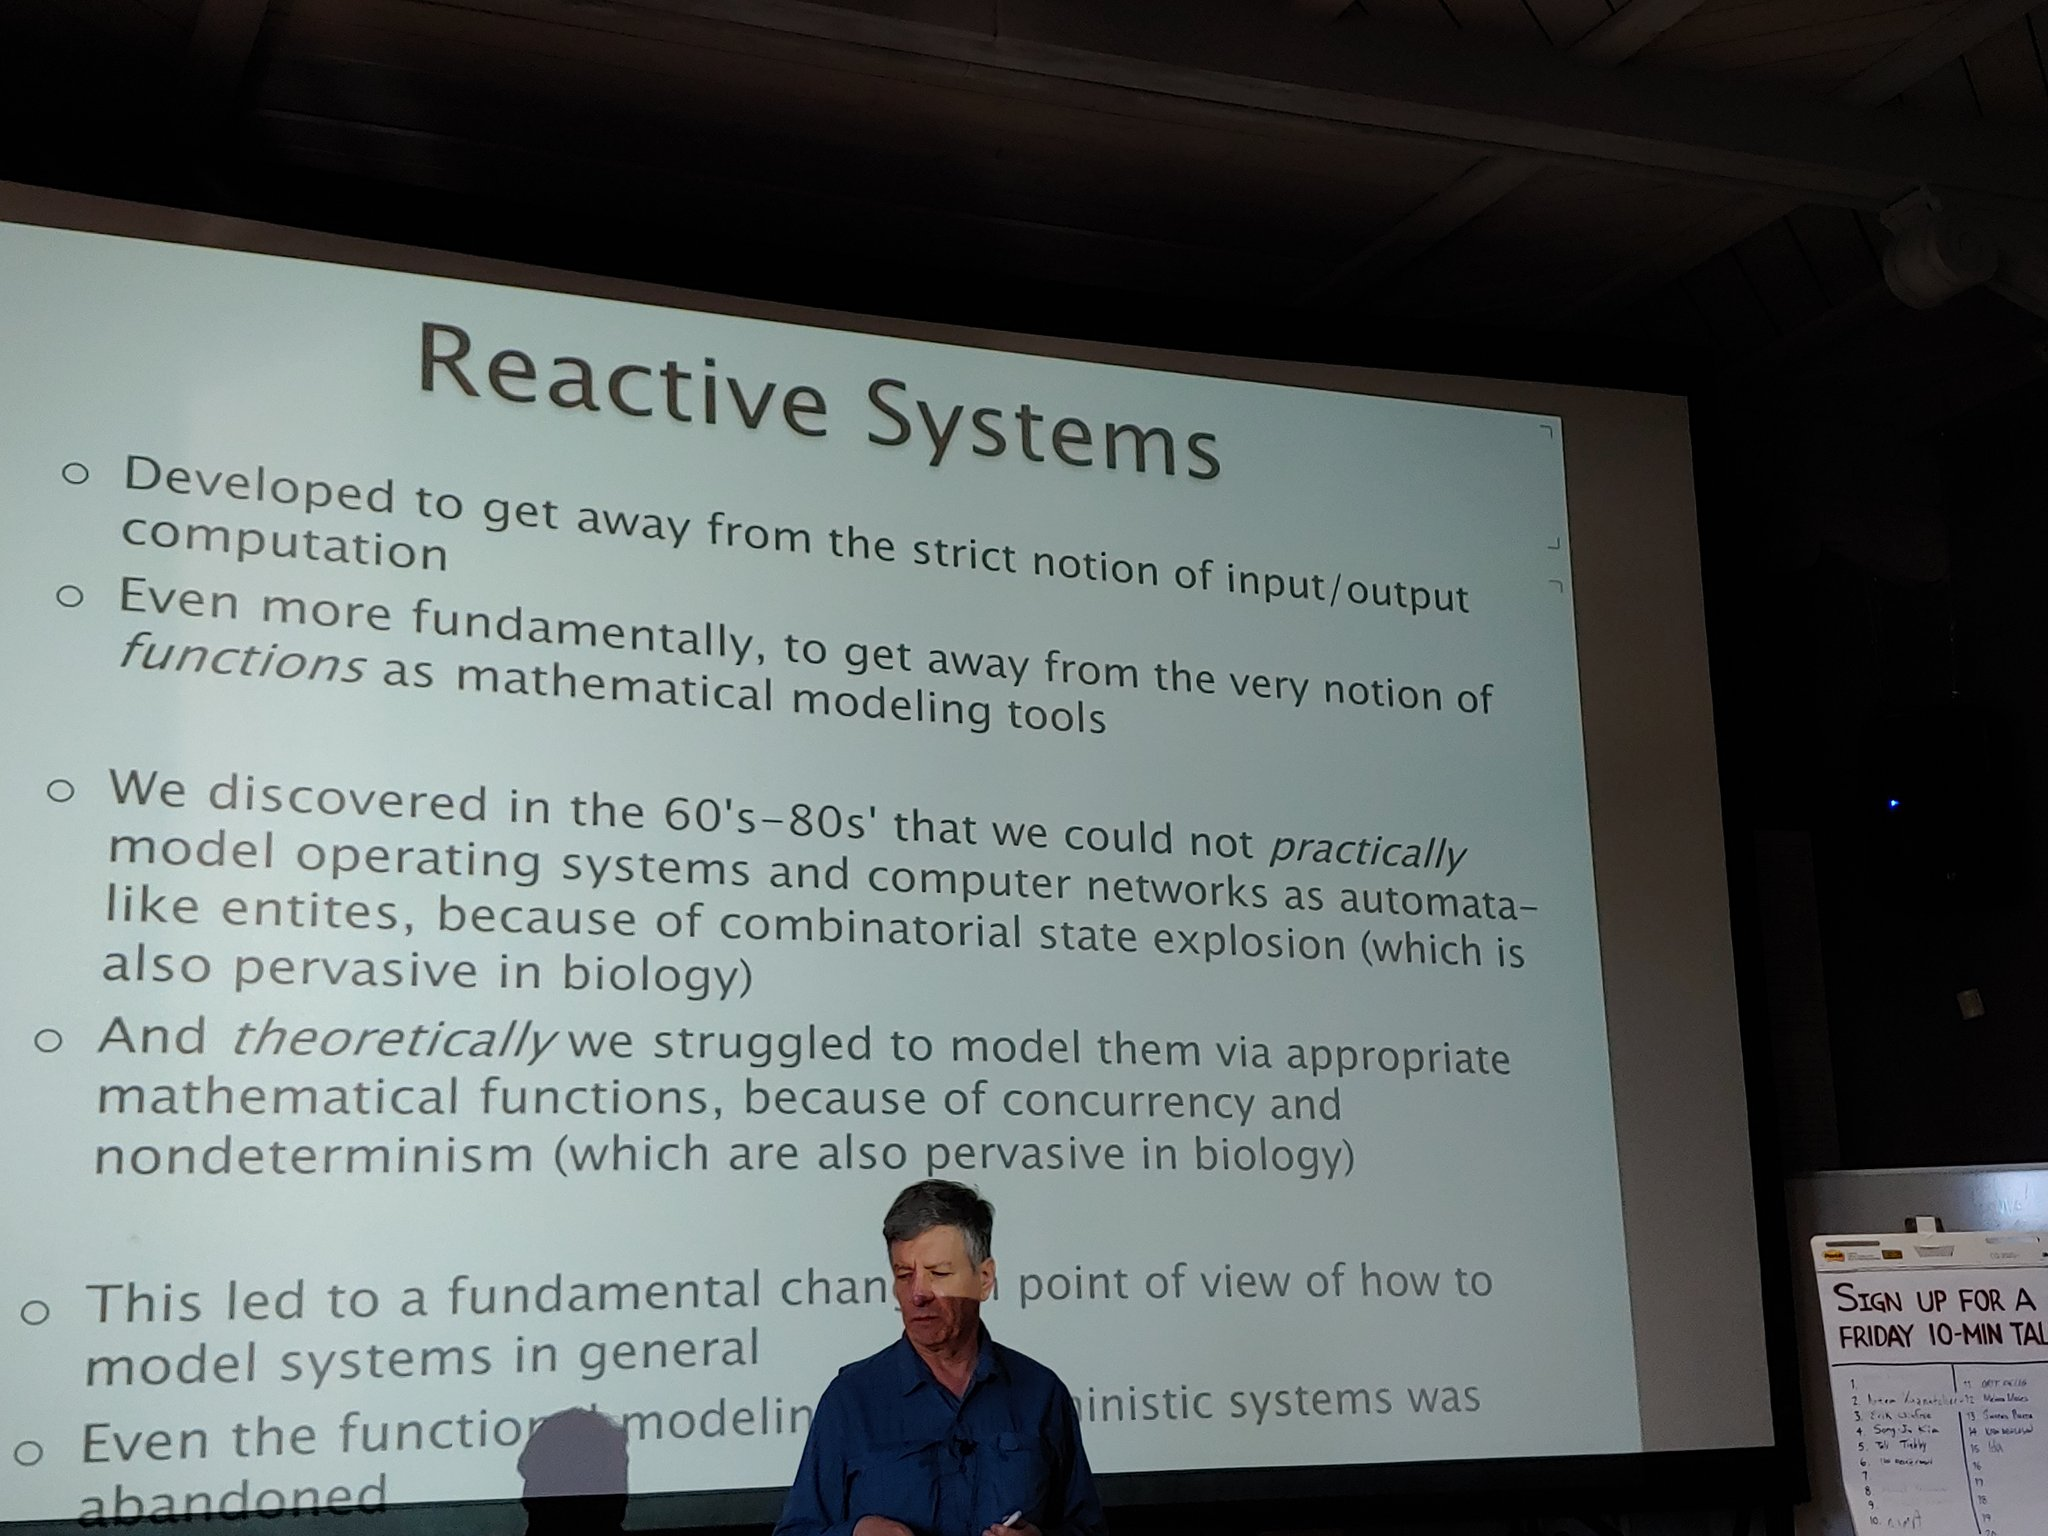 Luca Cardelli introducing reactive systems, which go beyond simple input-compute-output, and beyond deterministic execution, to a broader class of computations writ large. At @sfiscience biological computation workshop. https://t.co/LLVPuw7Kqi